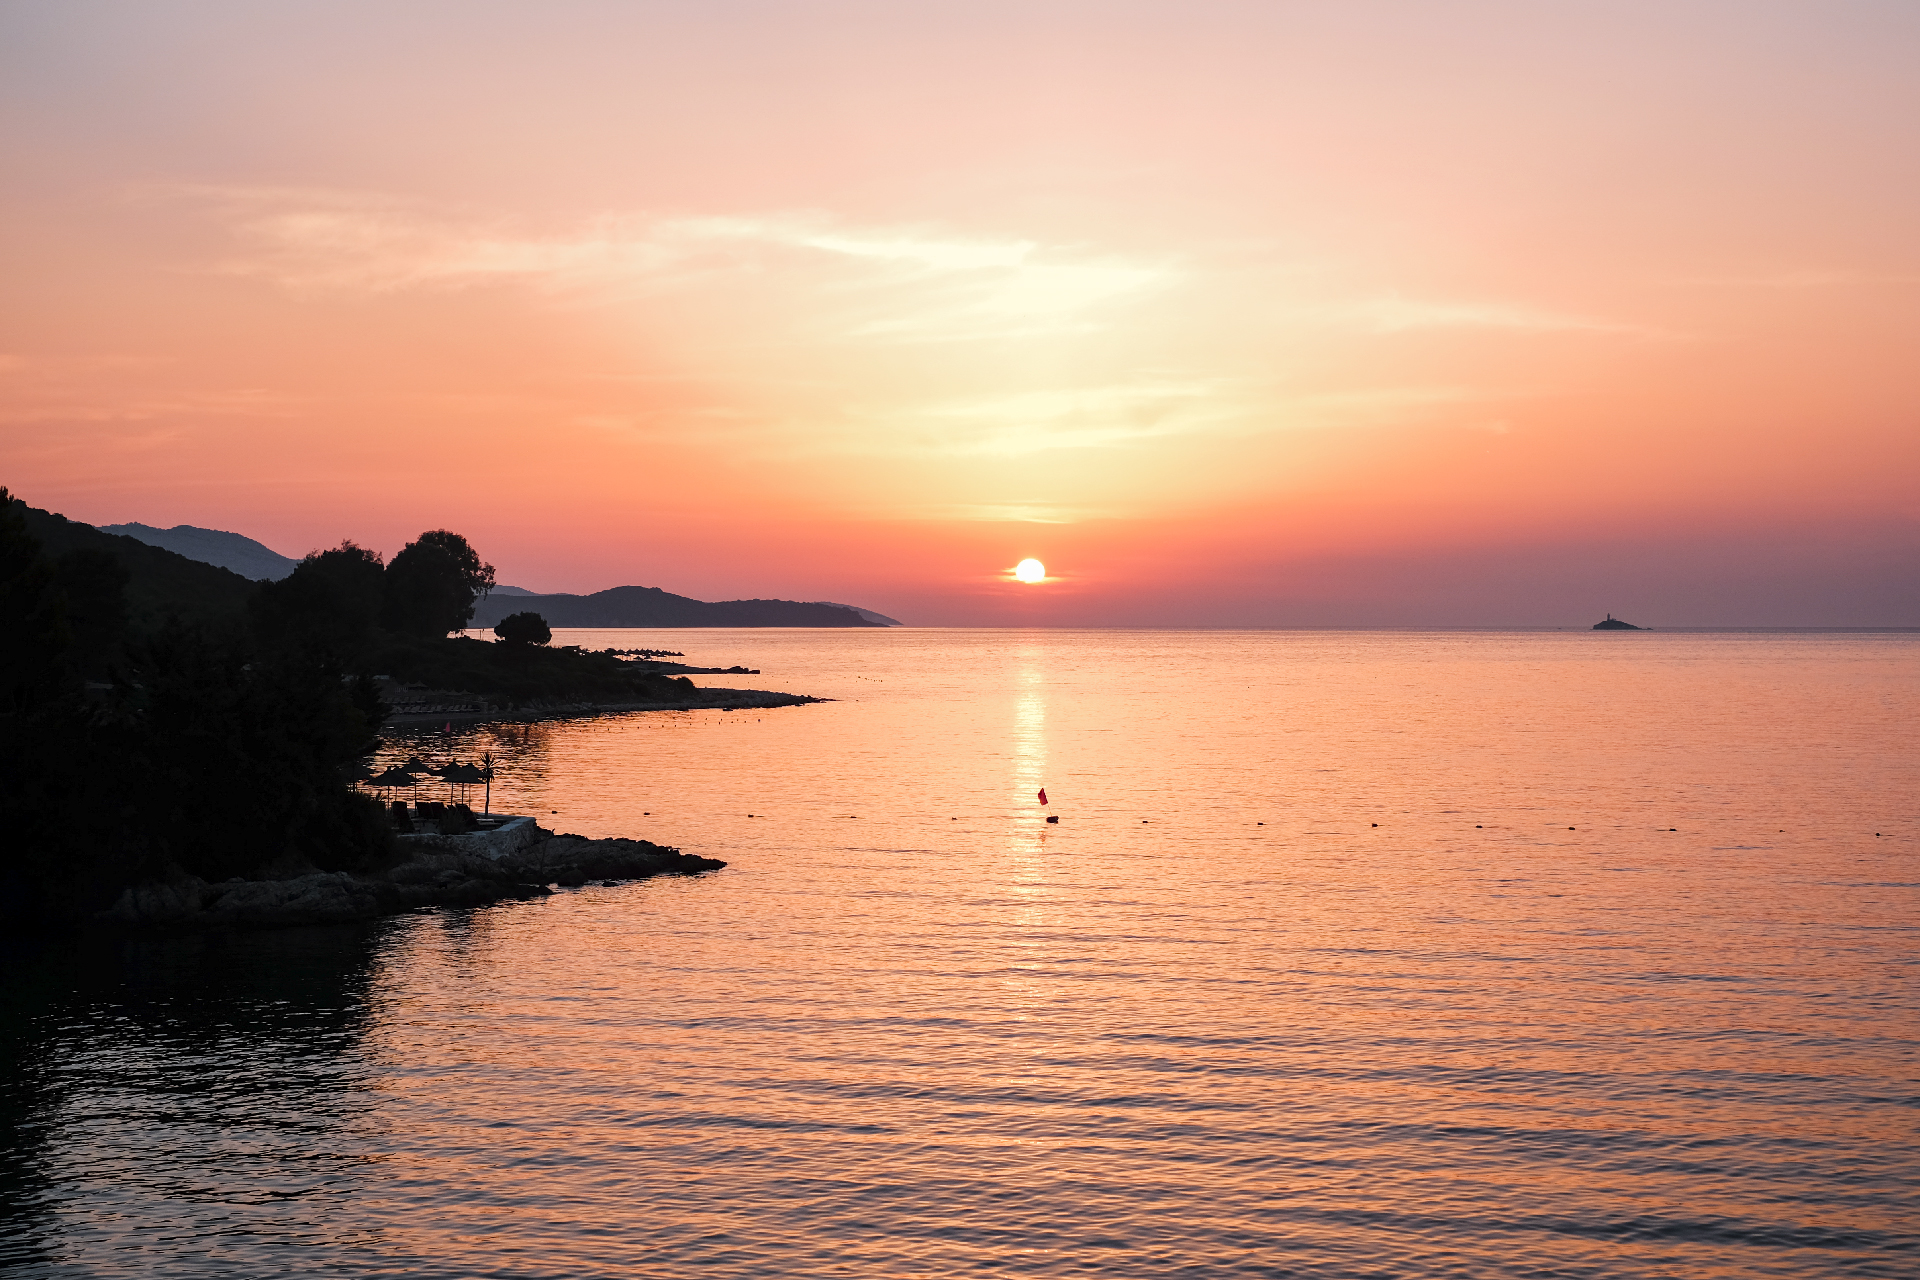 sunset at the beach, road trip in albania, Riviera